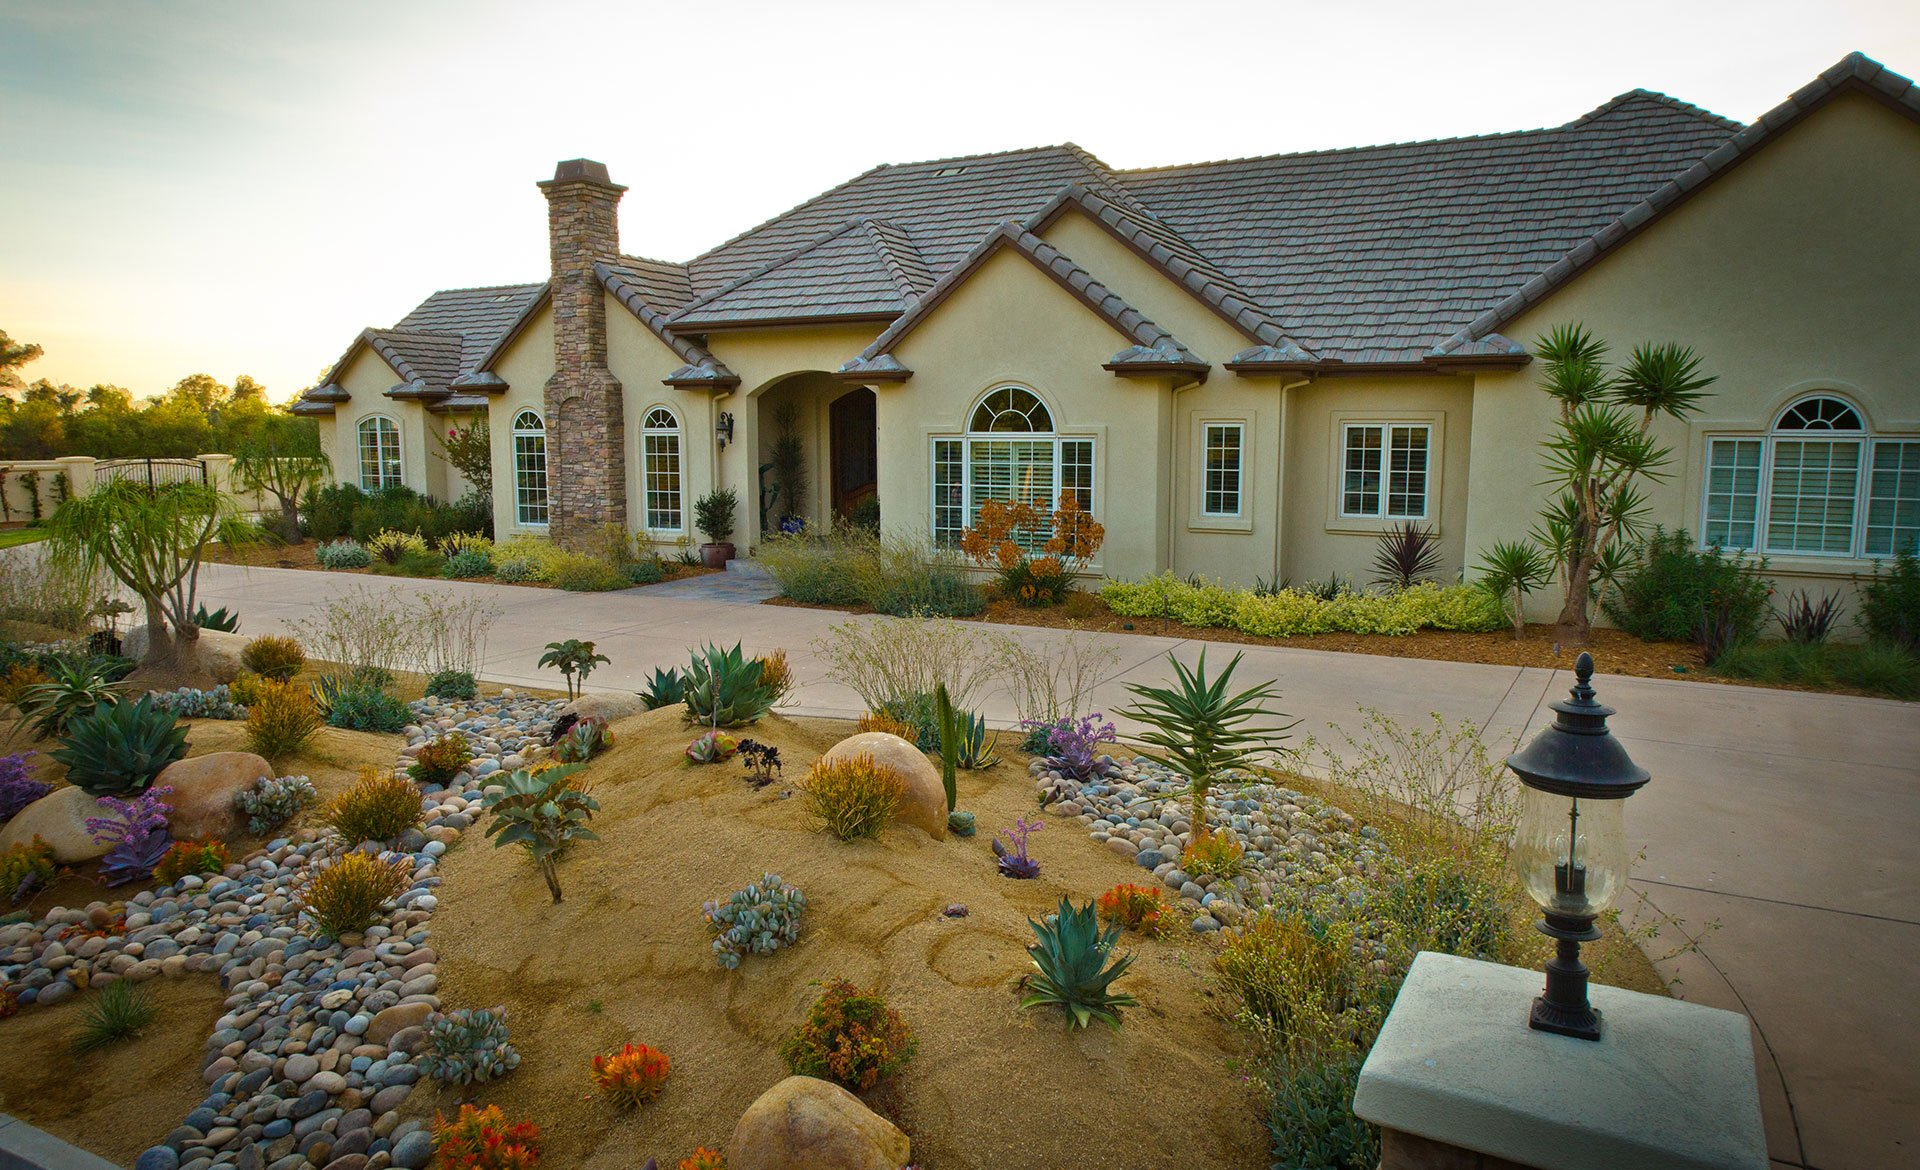 Desert landscaping can create curb appeal with popular plants